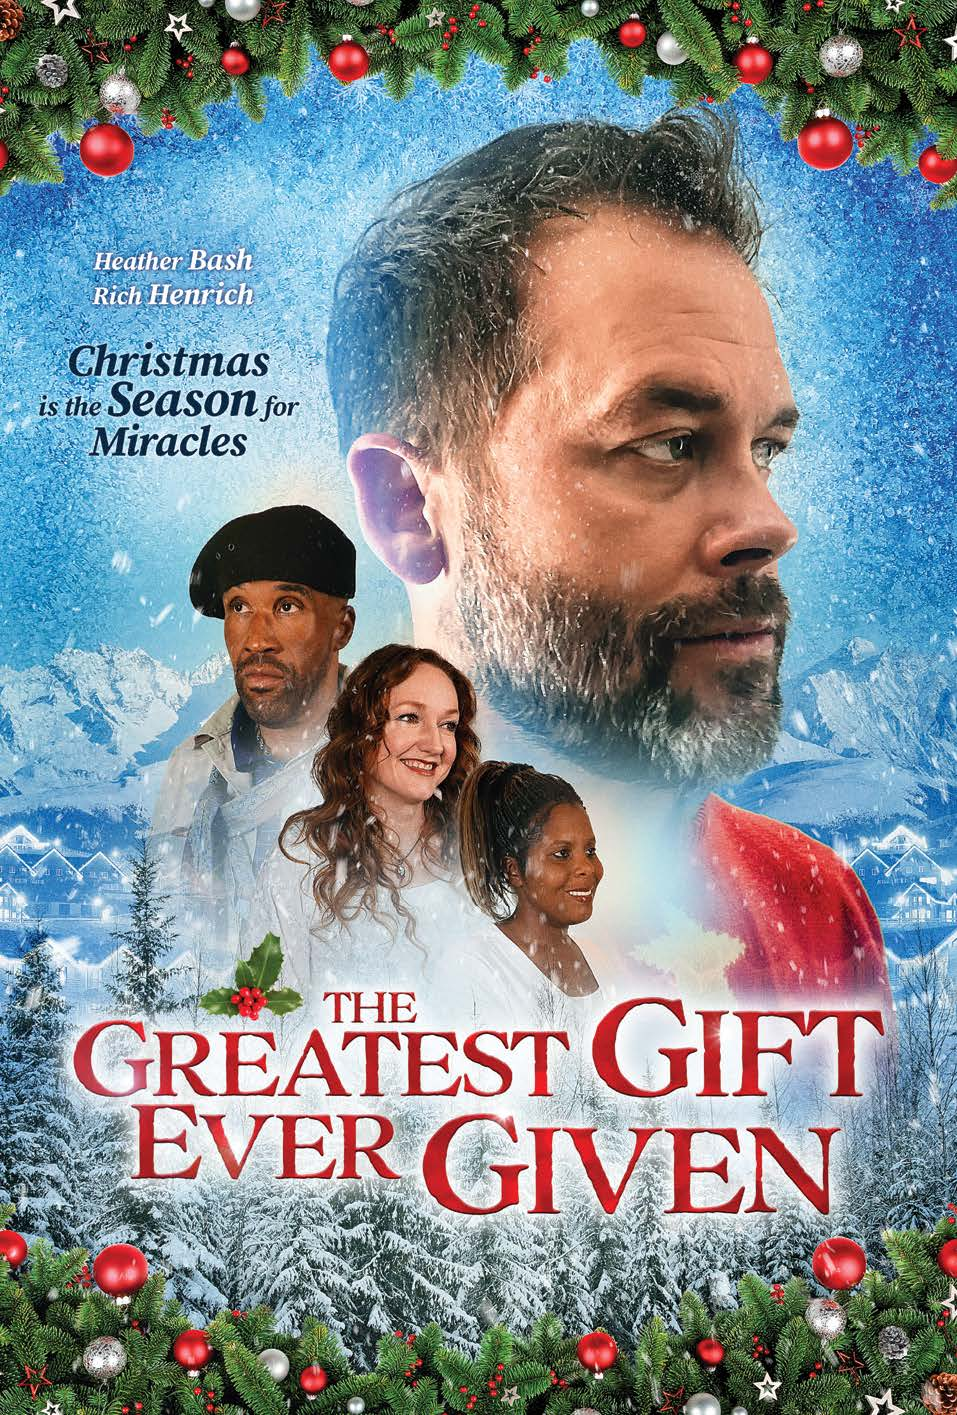 The Greatest Gift Ever Given (2020) - IMDb